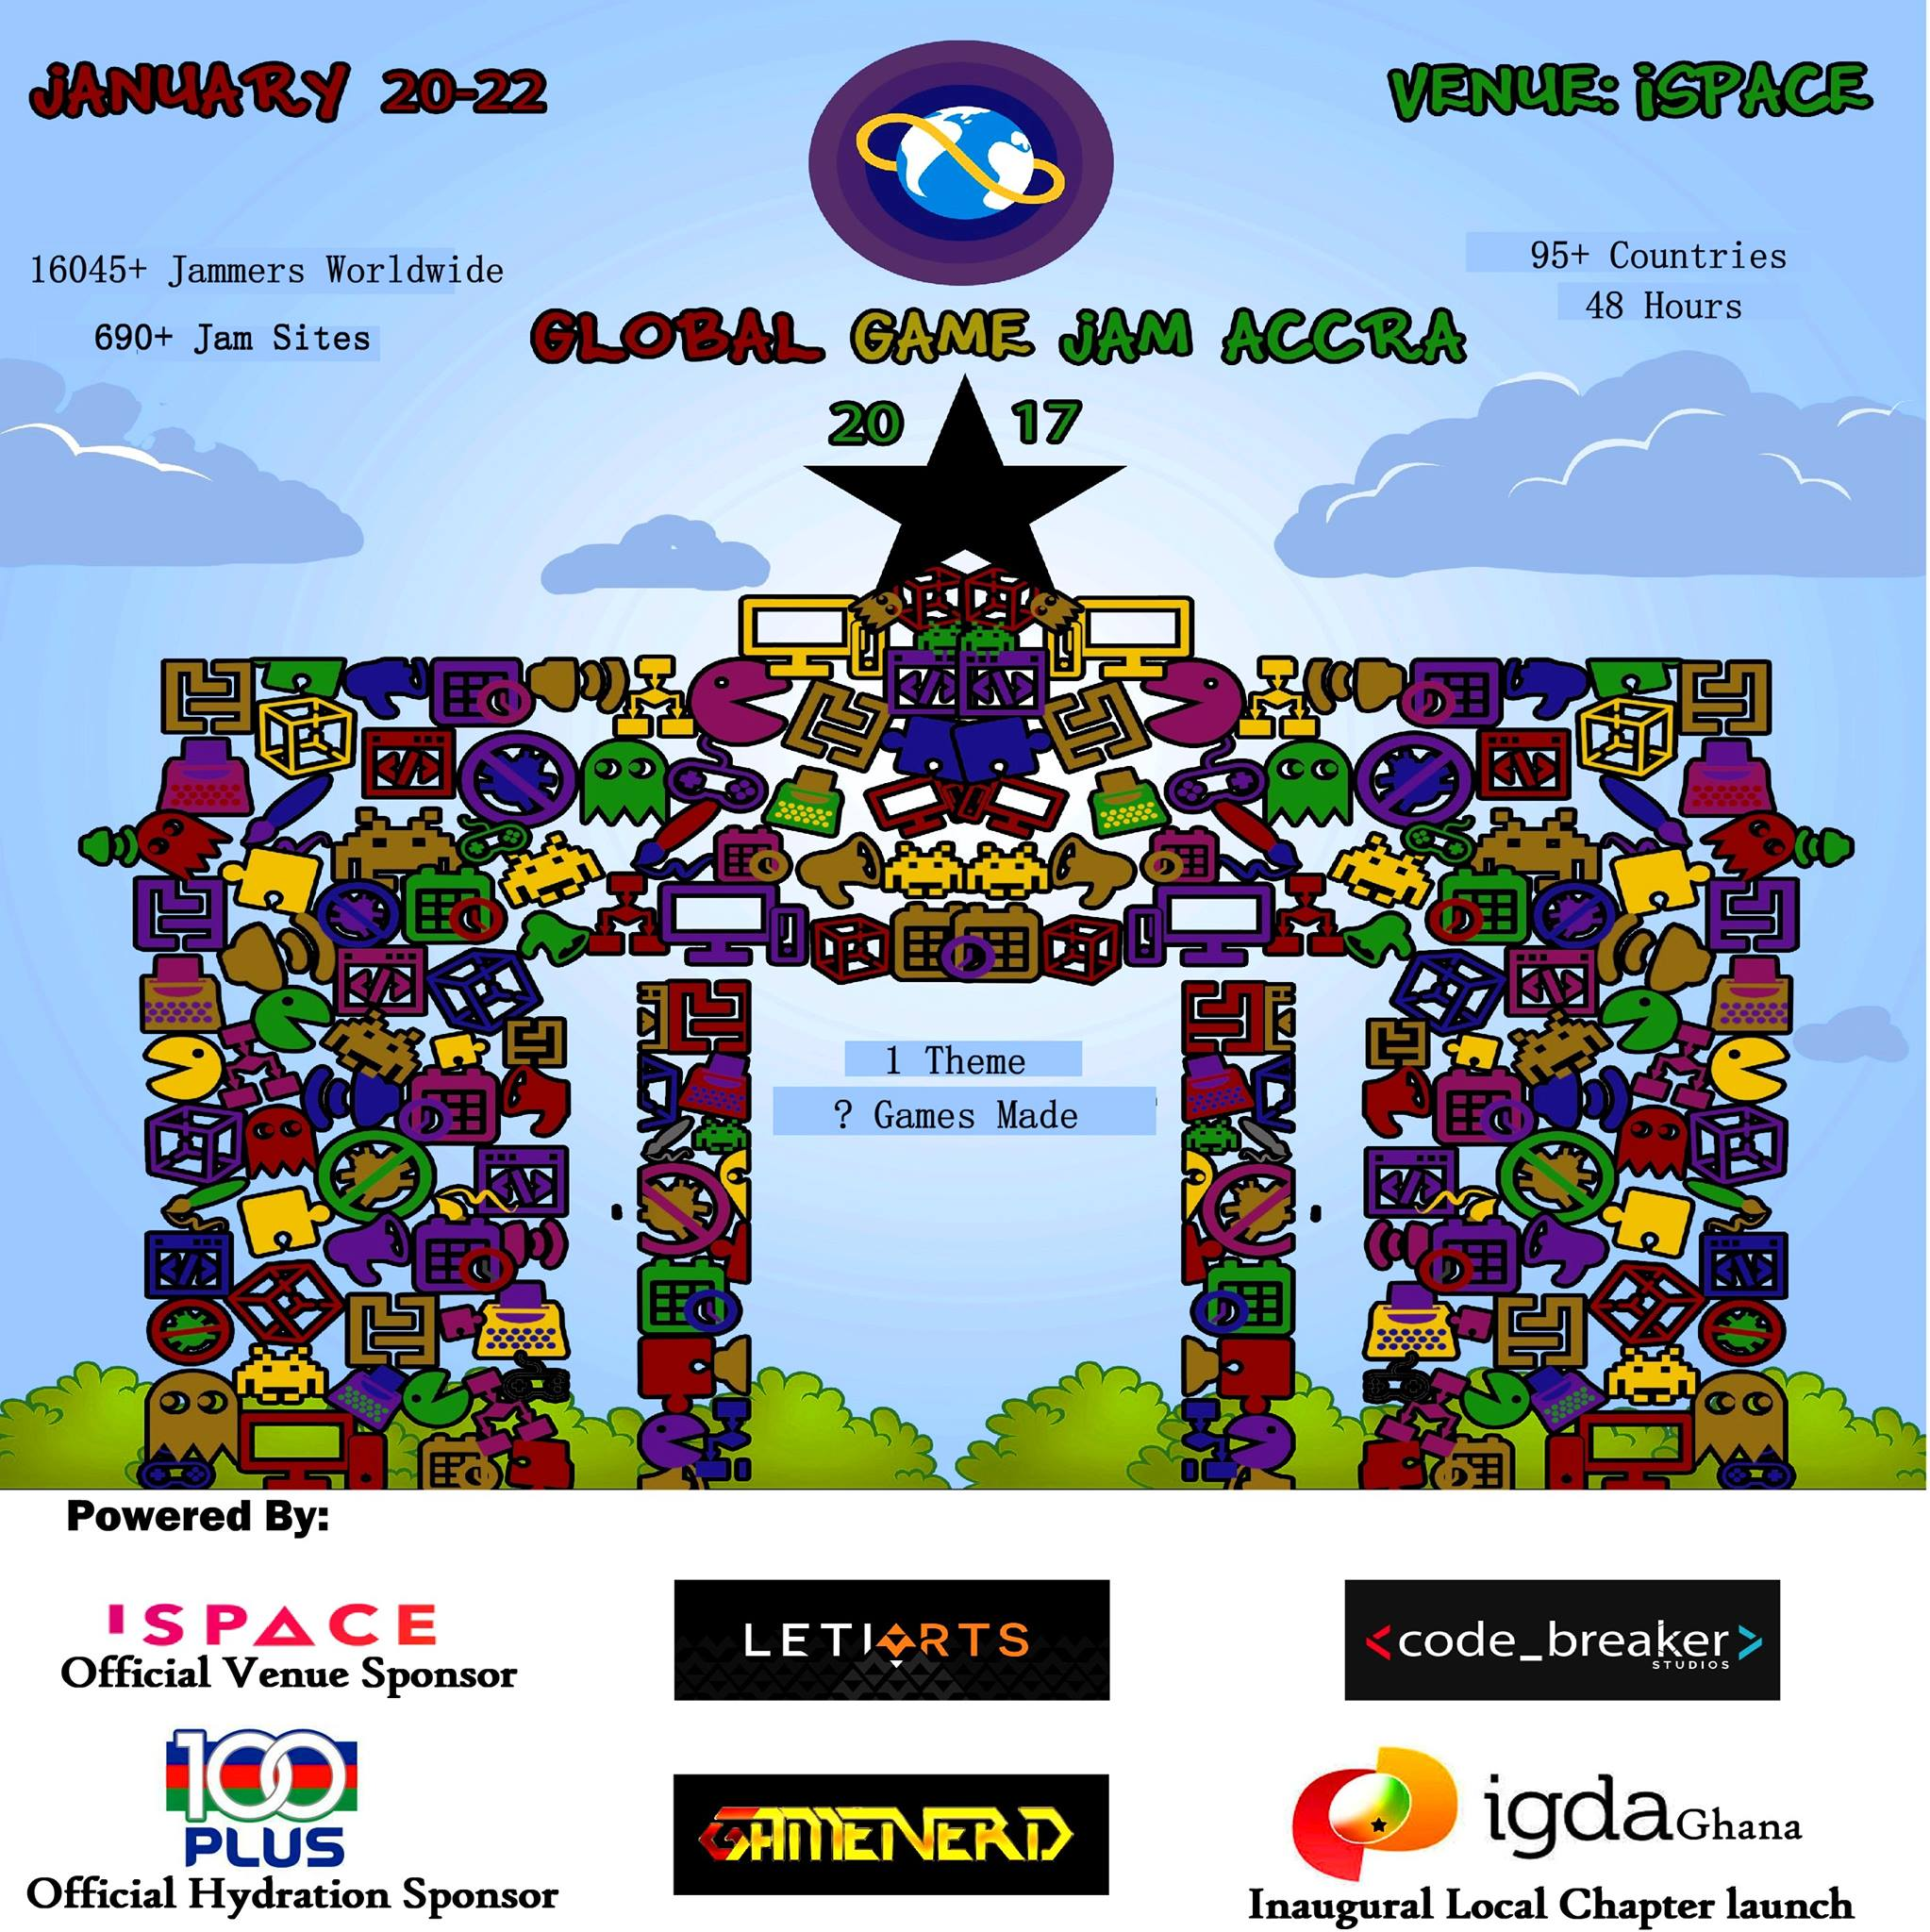 Get Your Game Face On – This Is Global Game Jam Accra 2017